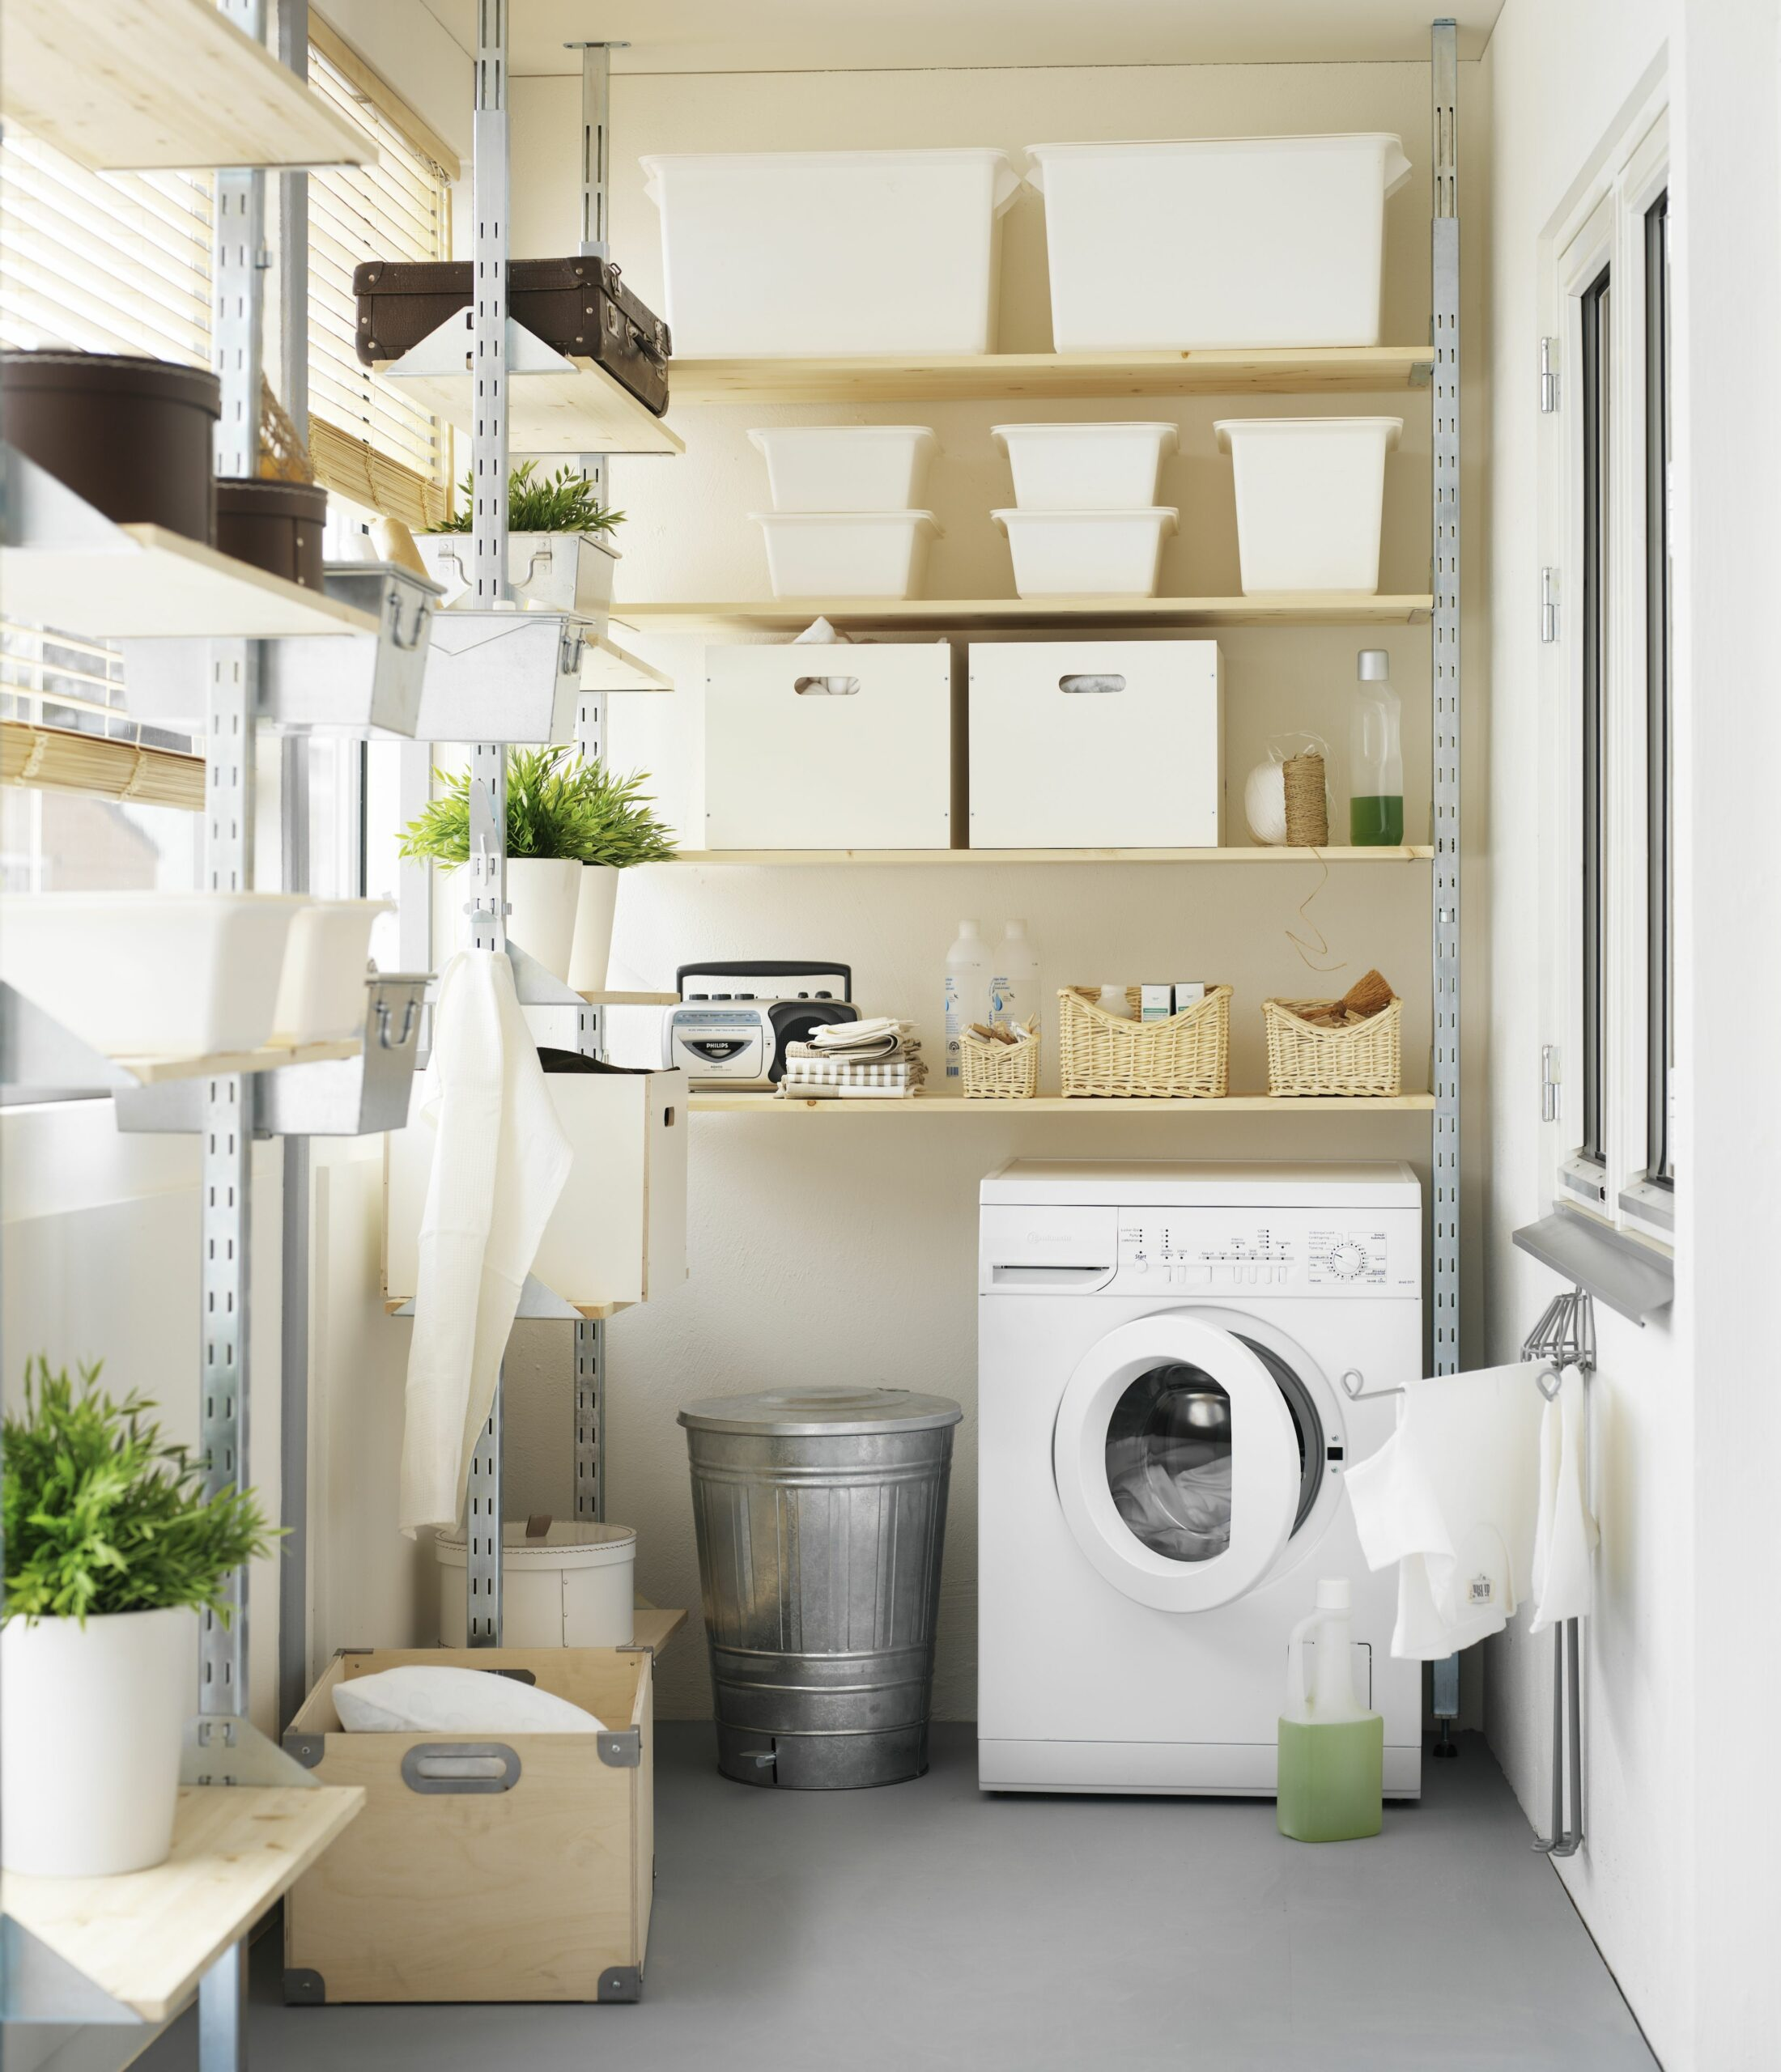 Got space for a laundry room? - ikea laundry room ideas uk